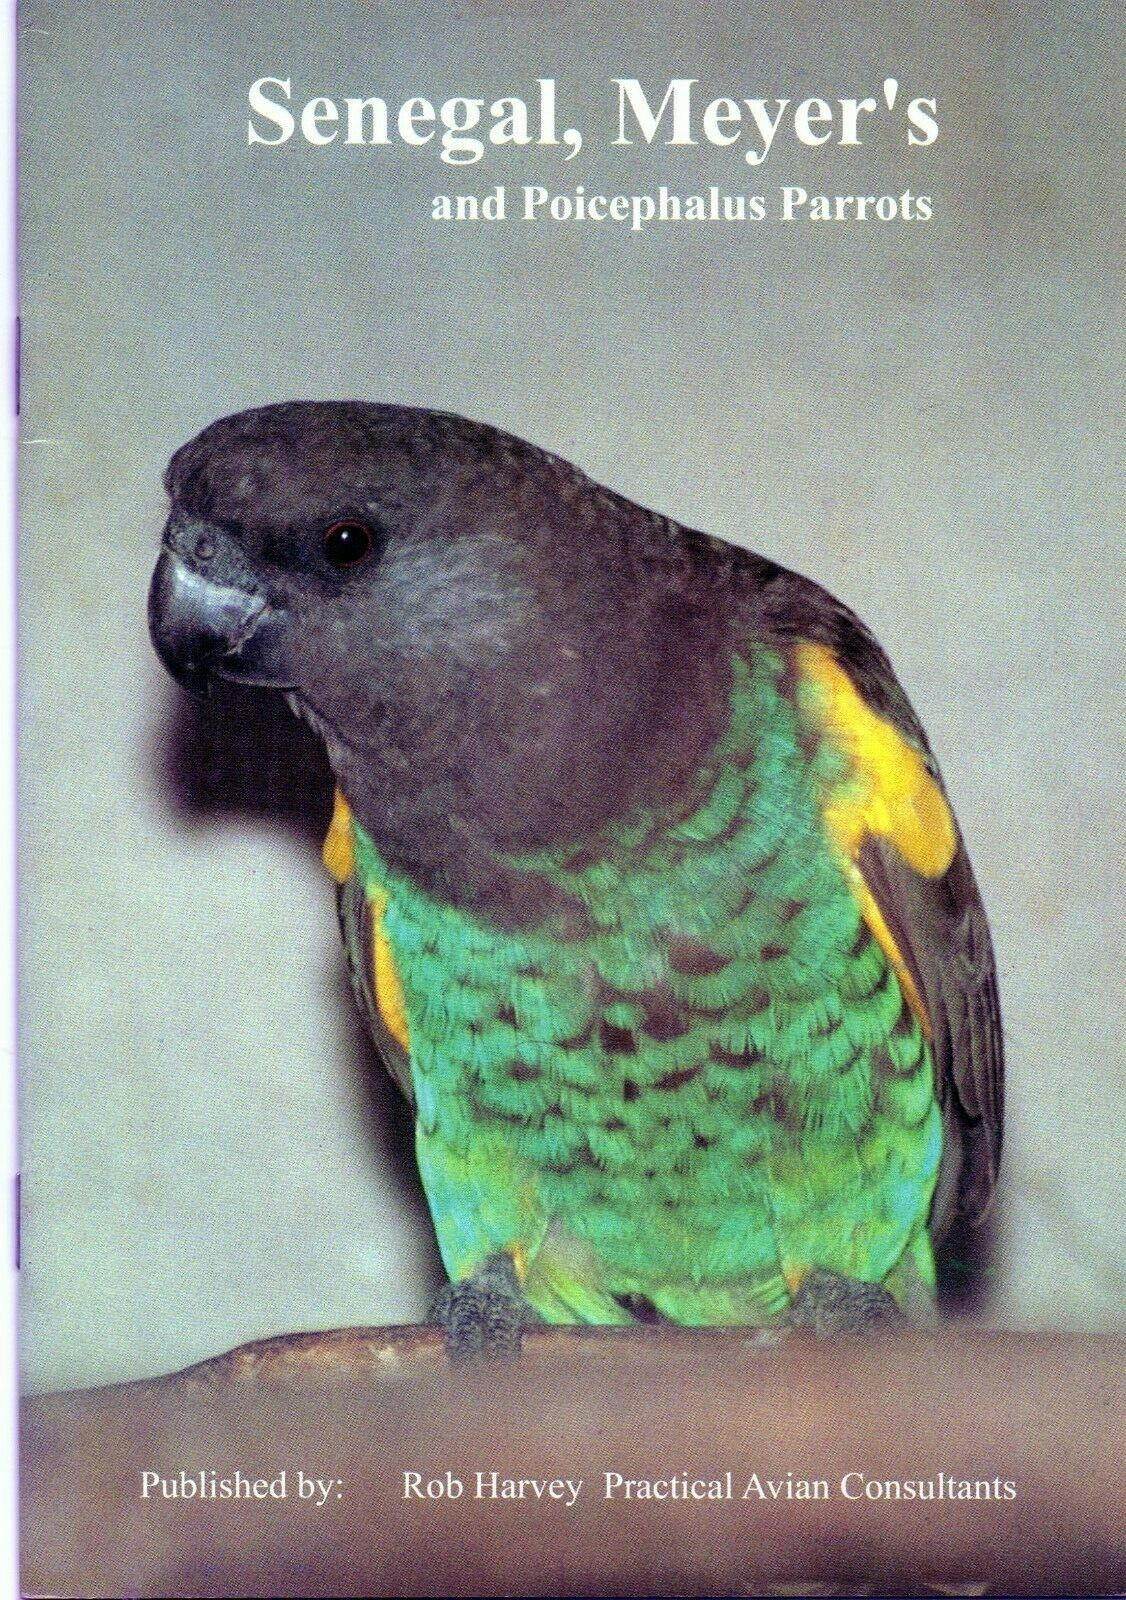 Senegal, Meyer's And Poicephalus Parrots Rob Harvey And Practical Avian Consultants